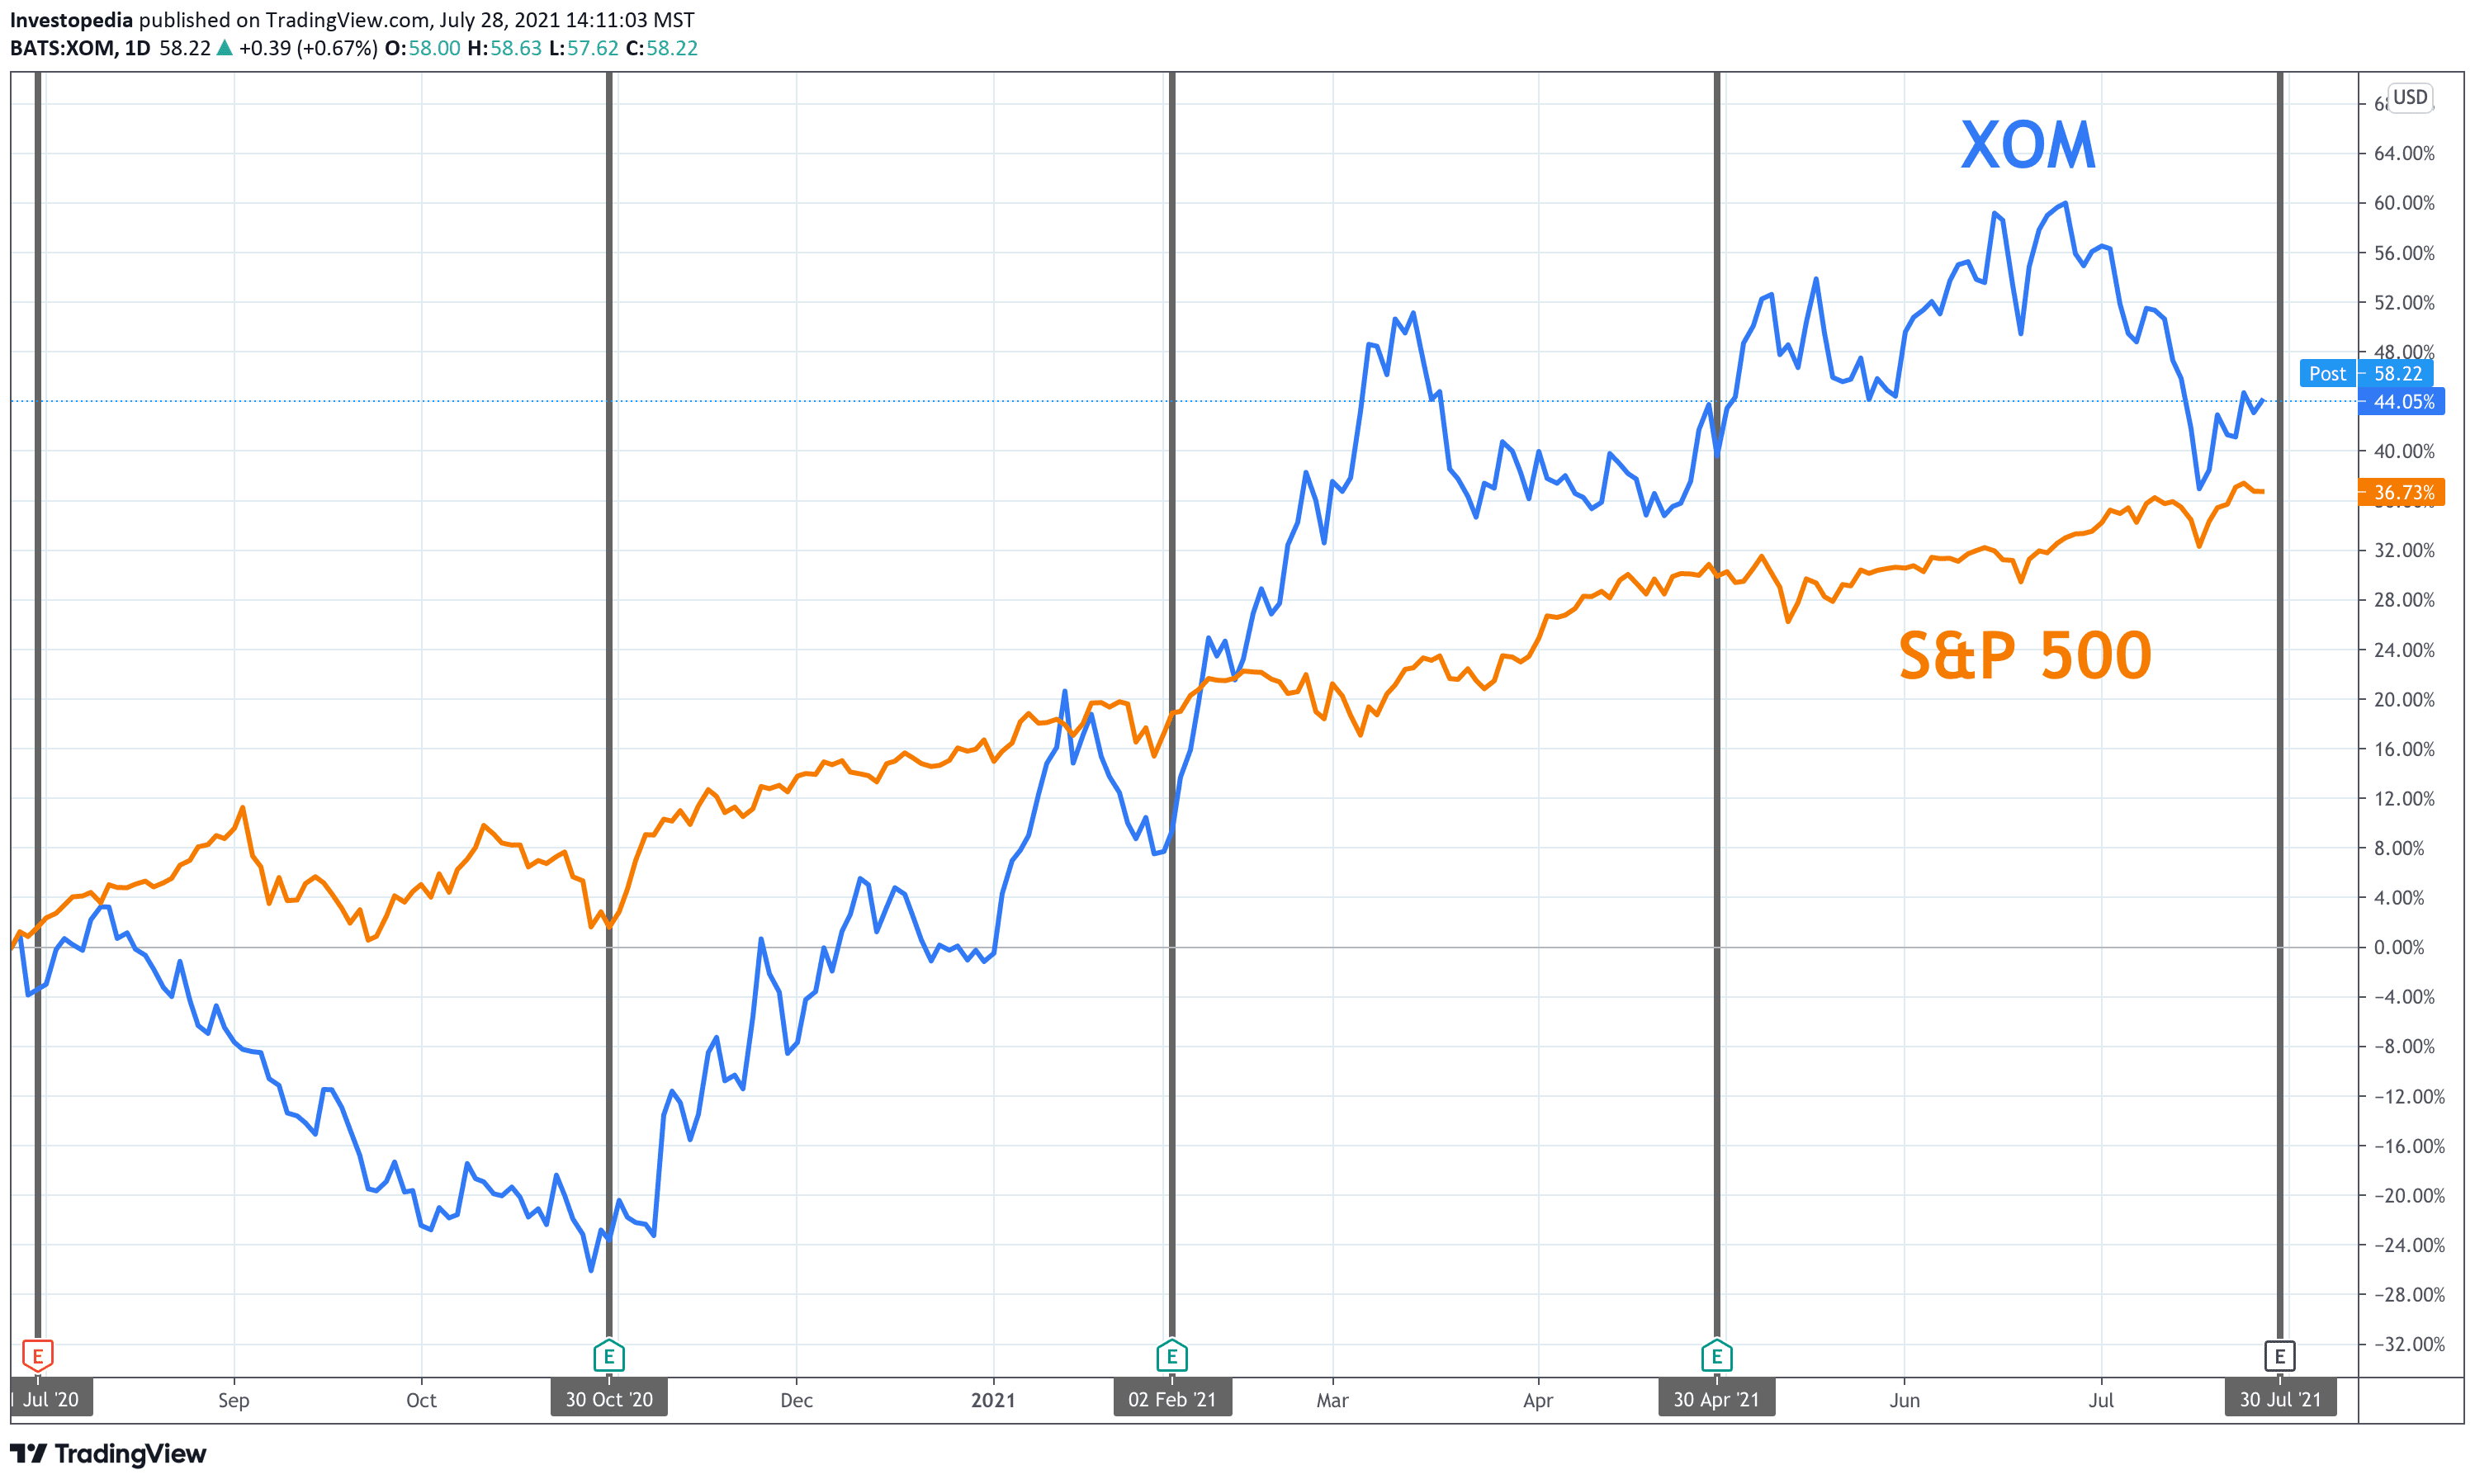 One Year Total Return for S&P 500 and ExxonMobil